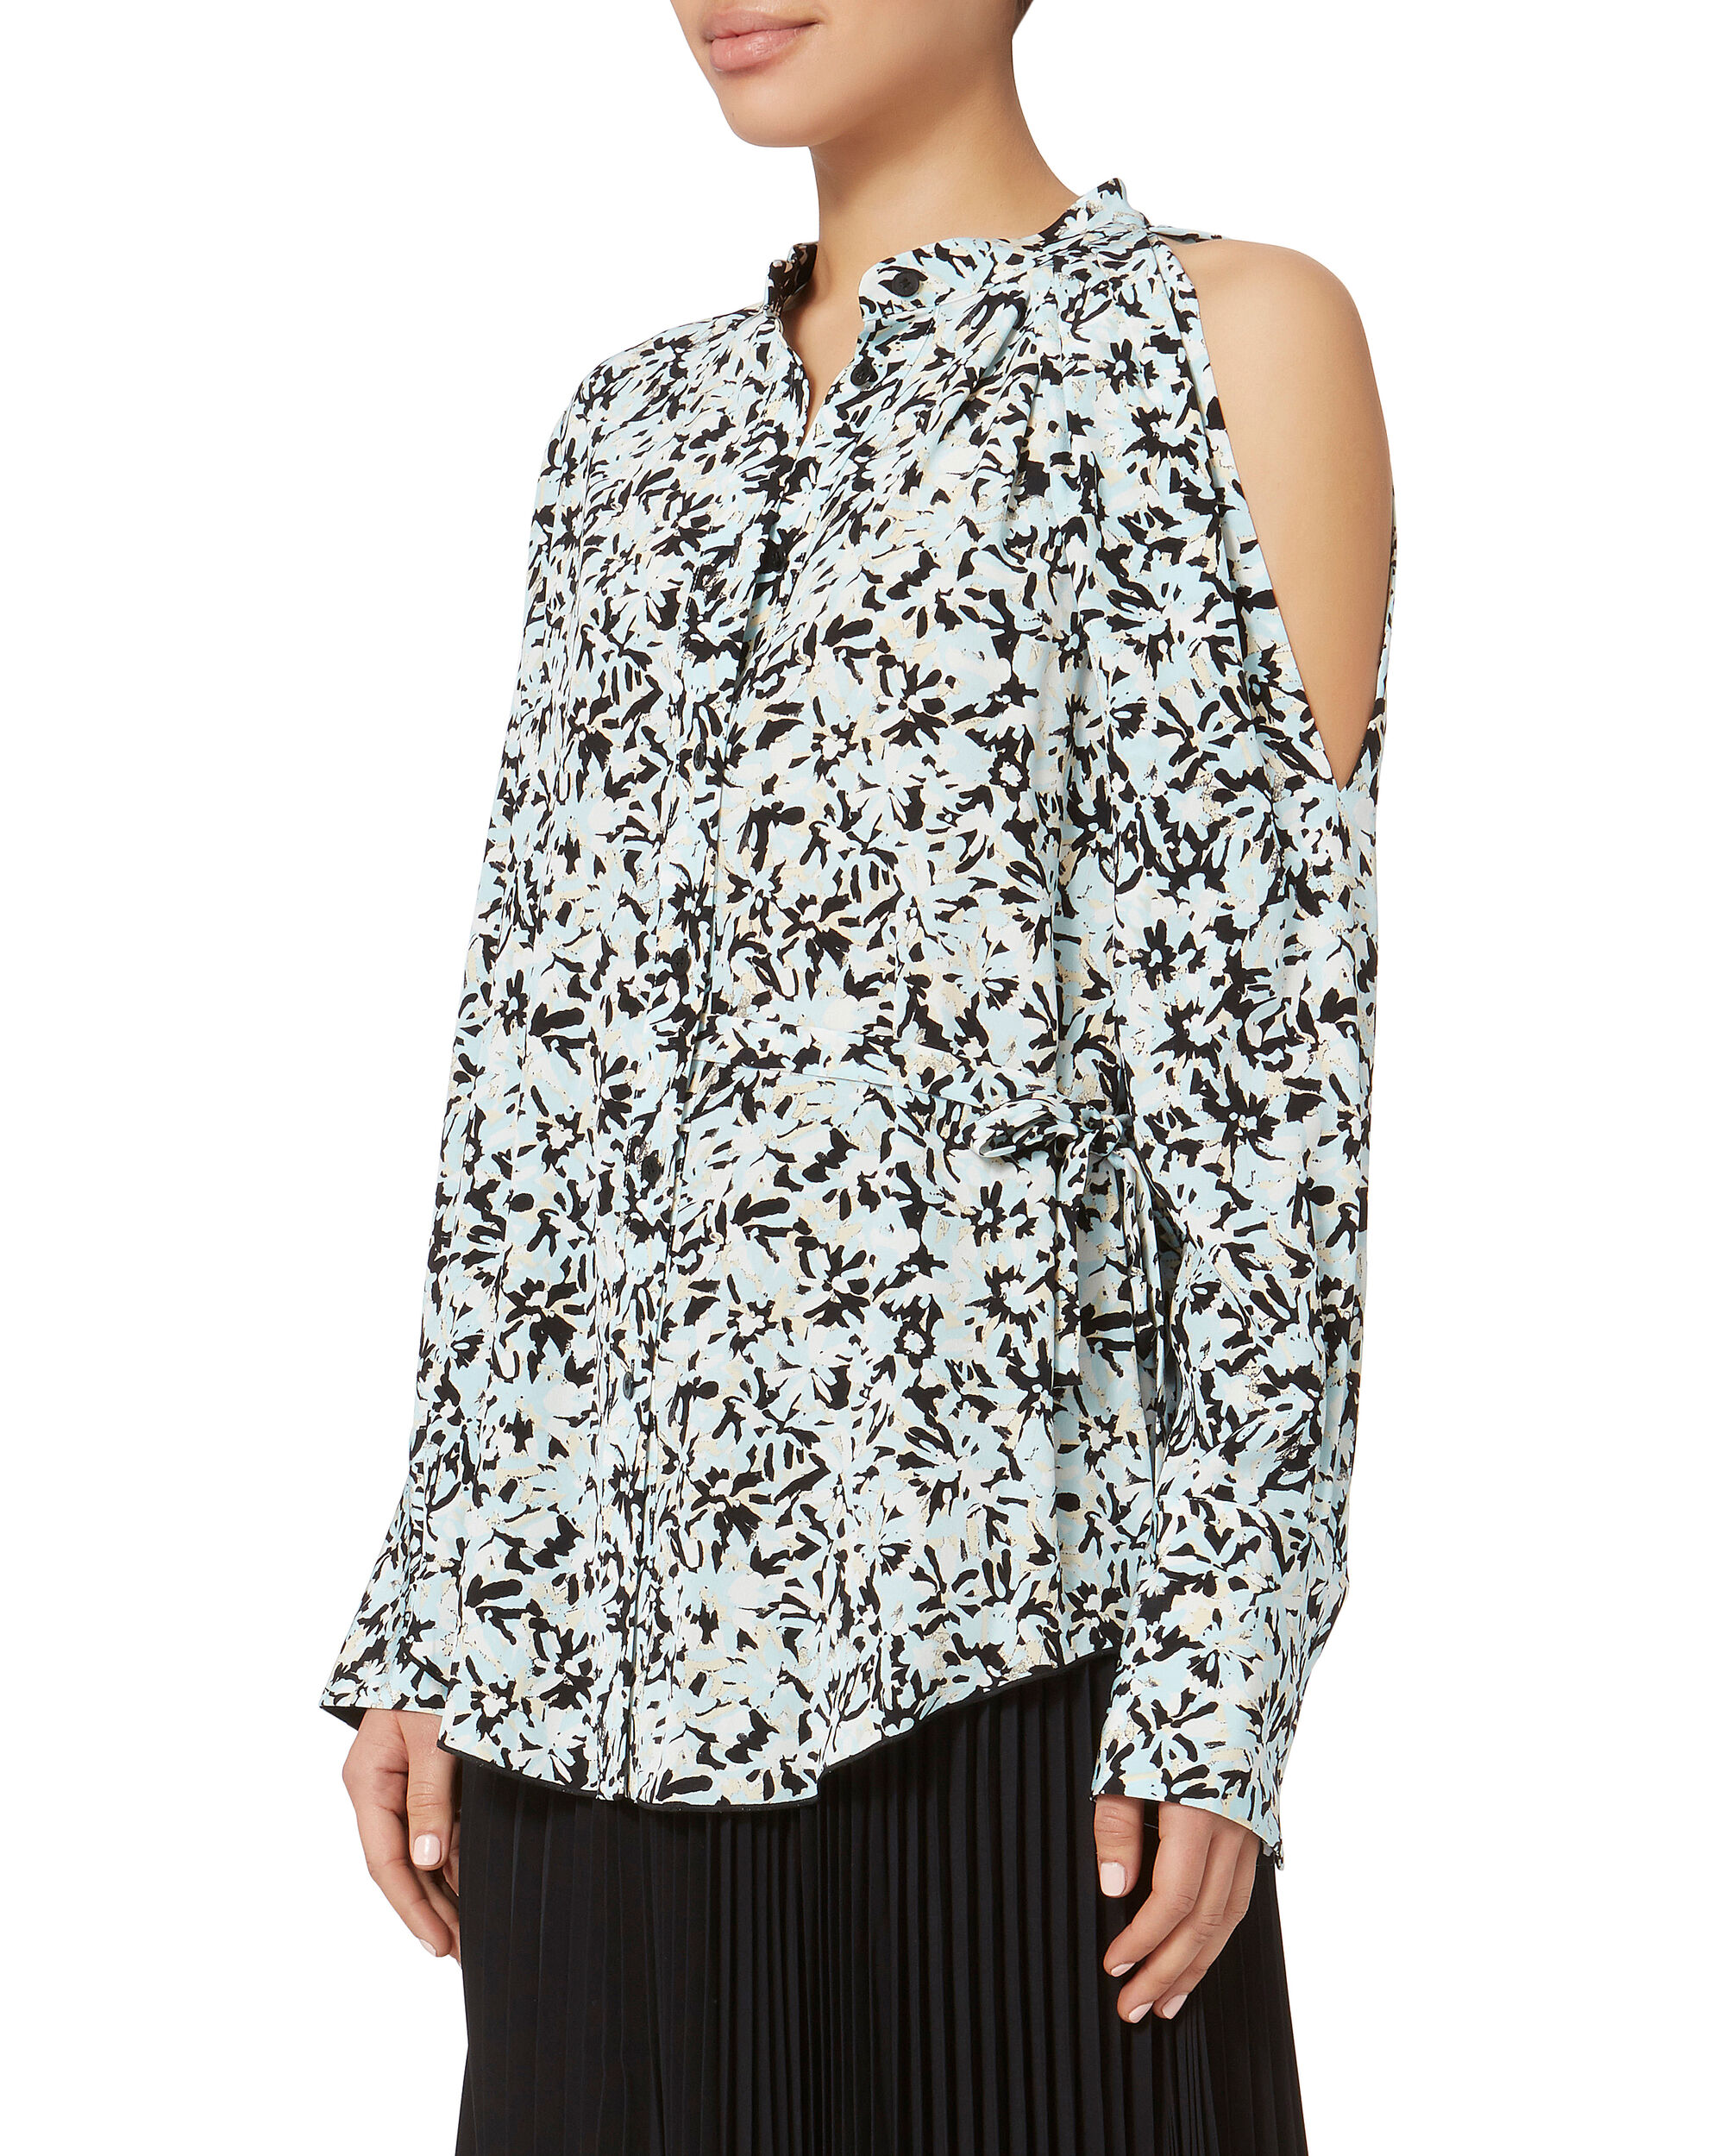 Asymmetric Floral Printed Top, PRINT, hi-res